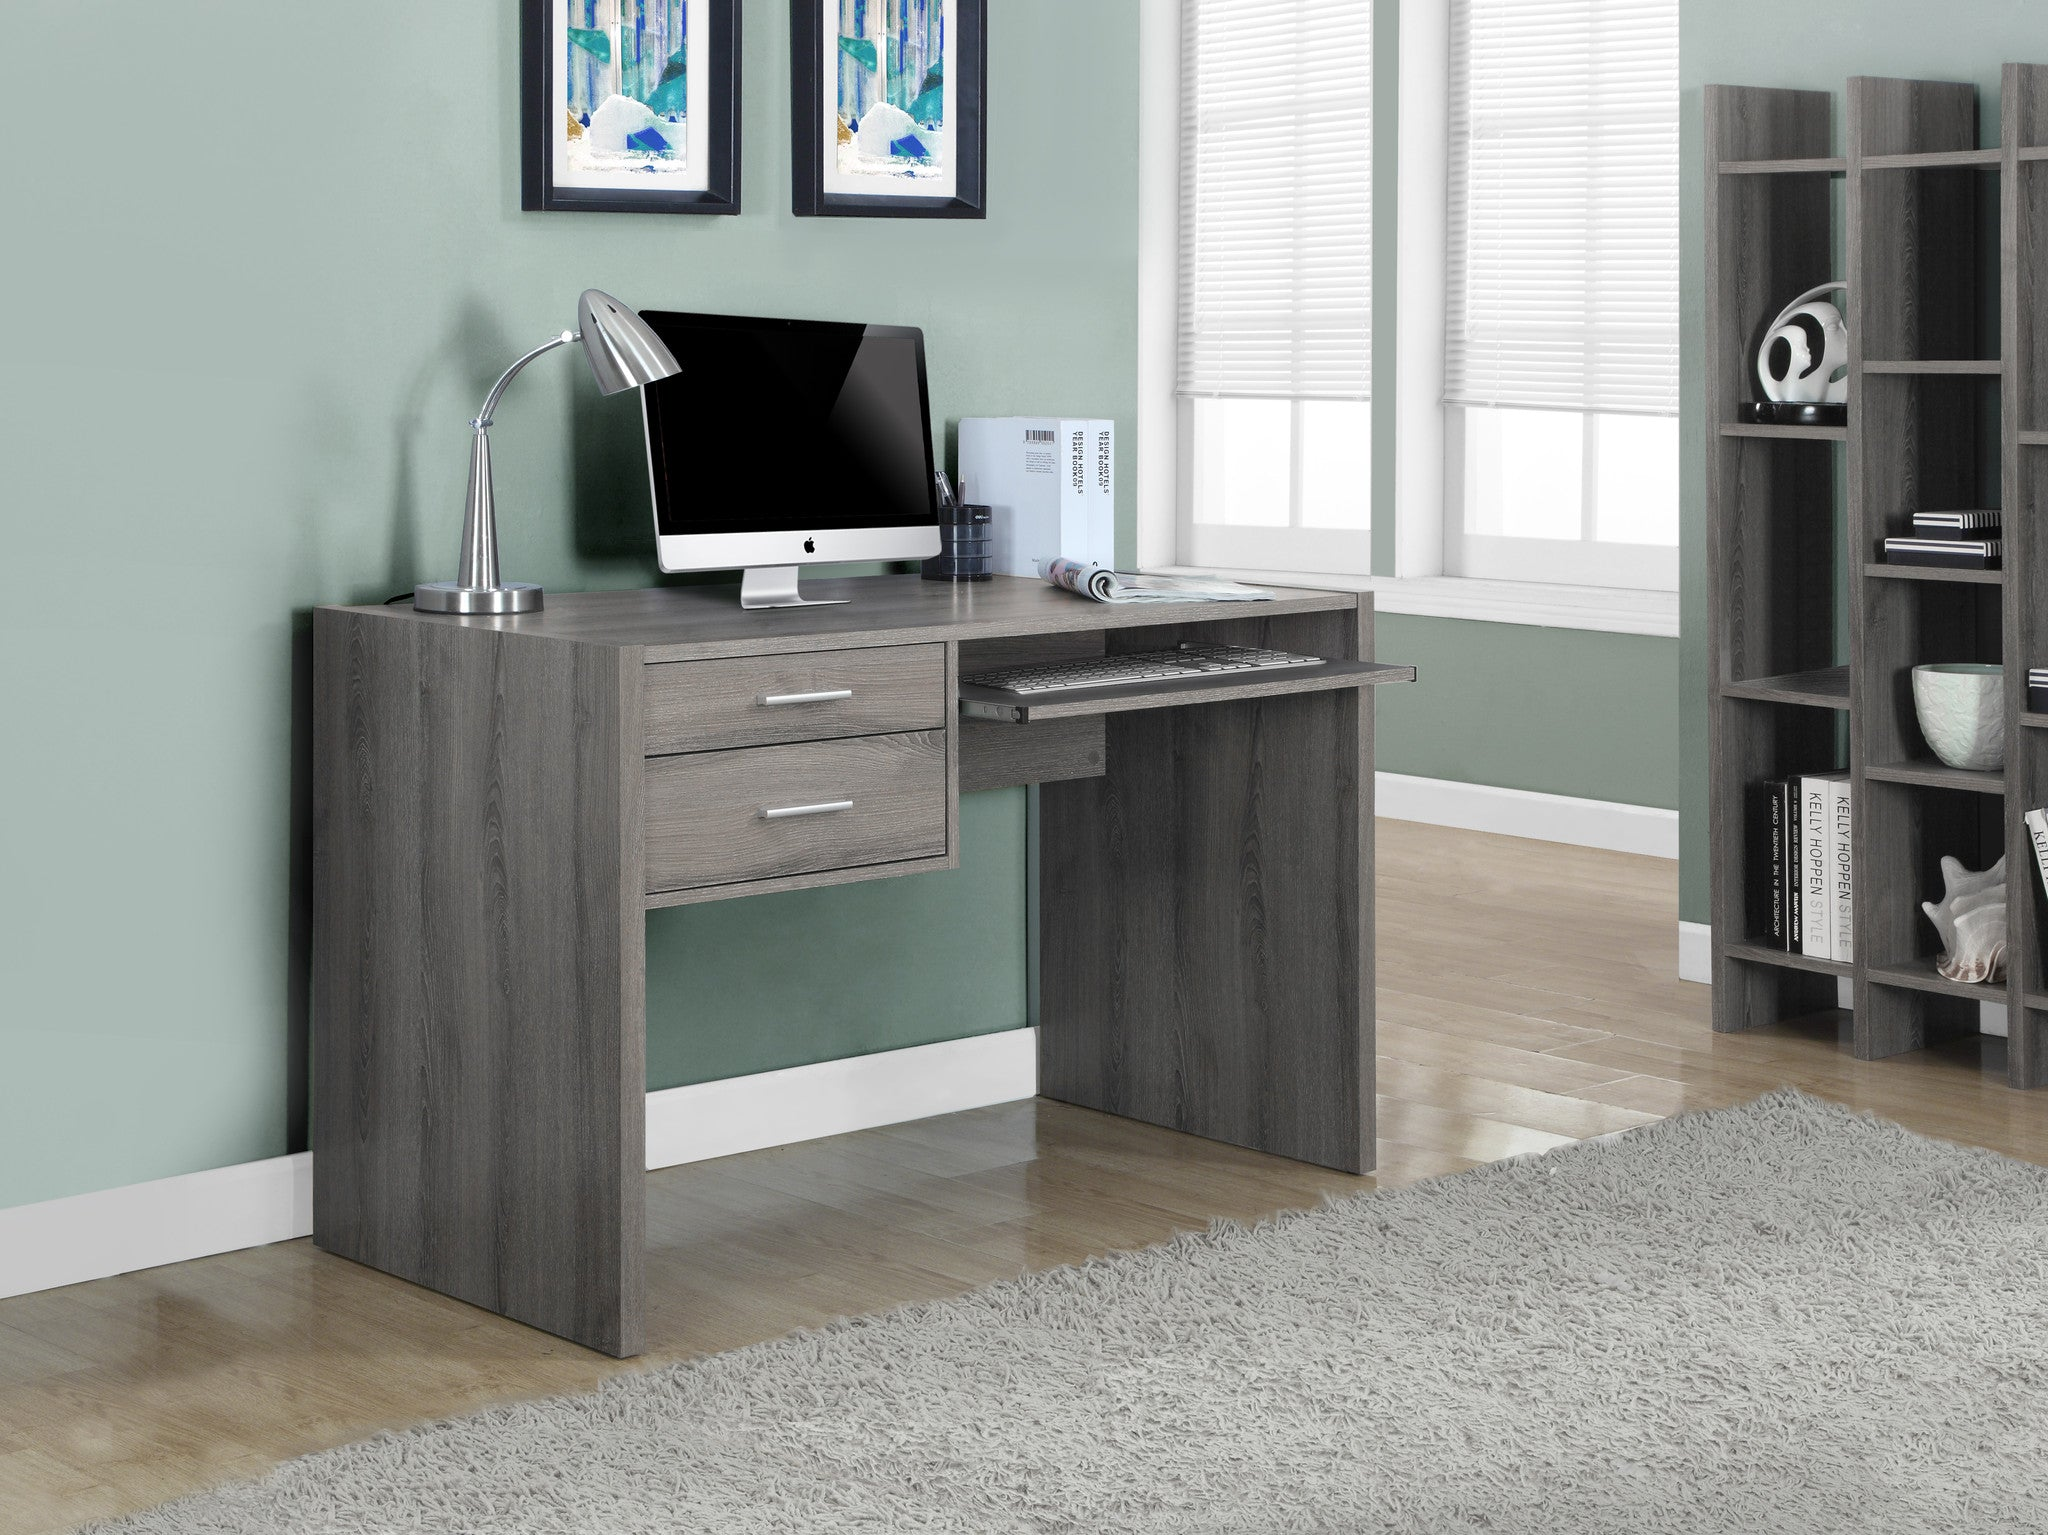 48 L Dark Taupe Computer Desk Drawers Pull Out Tray The Office Furniture Depot